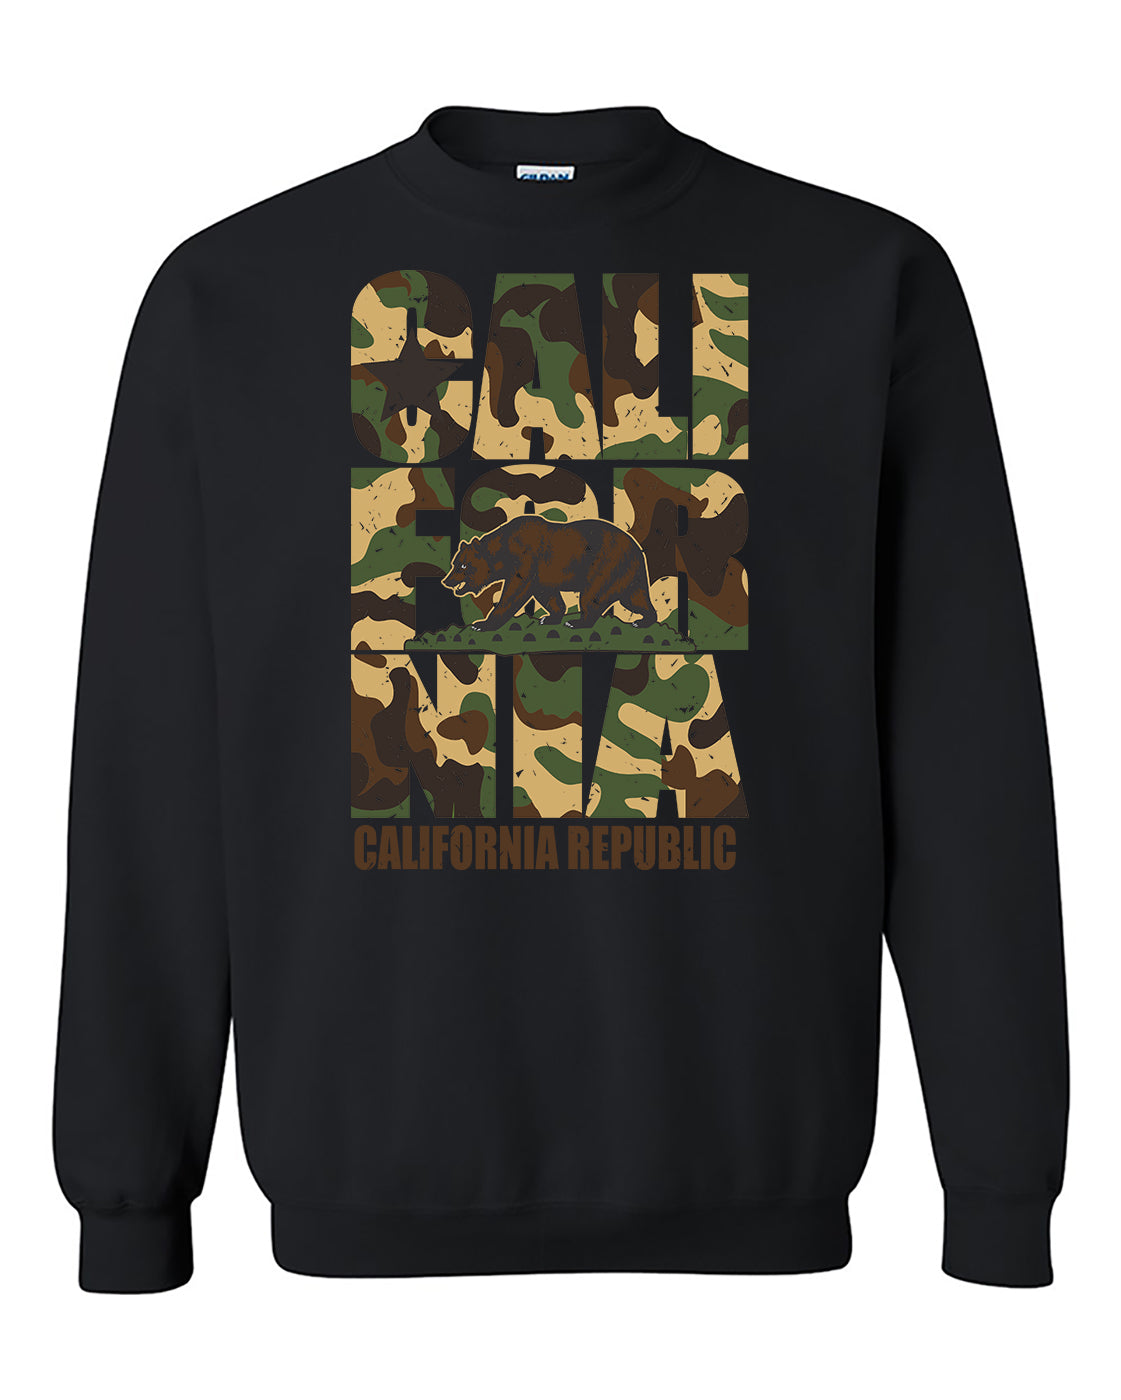 California Camoflag  Vintage California Republic Camoflag Cali Bear Crewneck Sweater